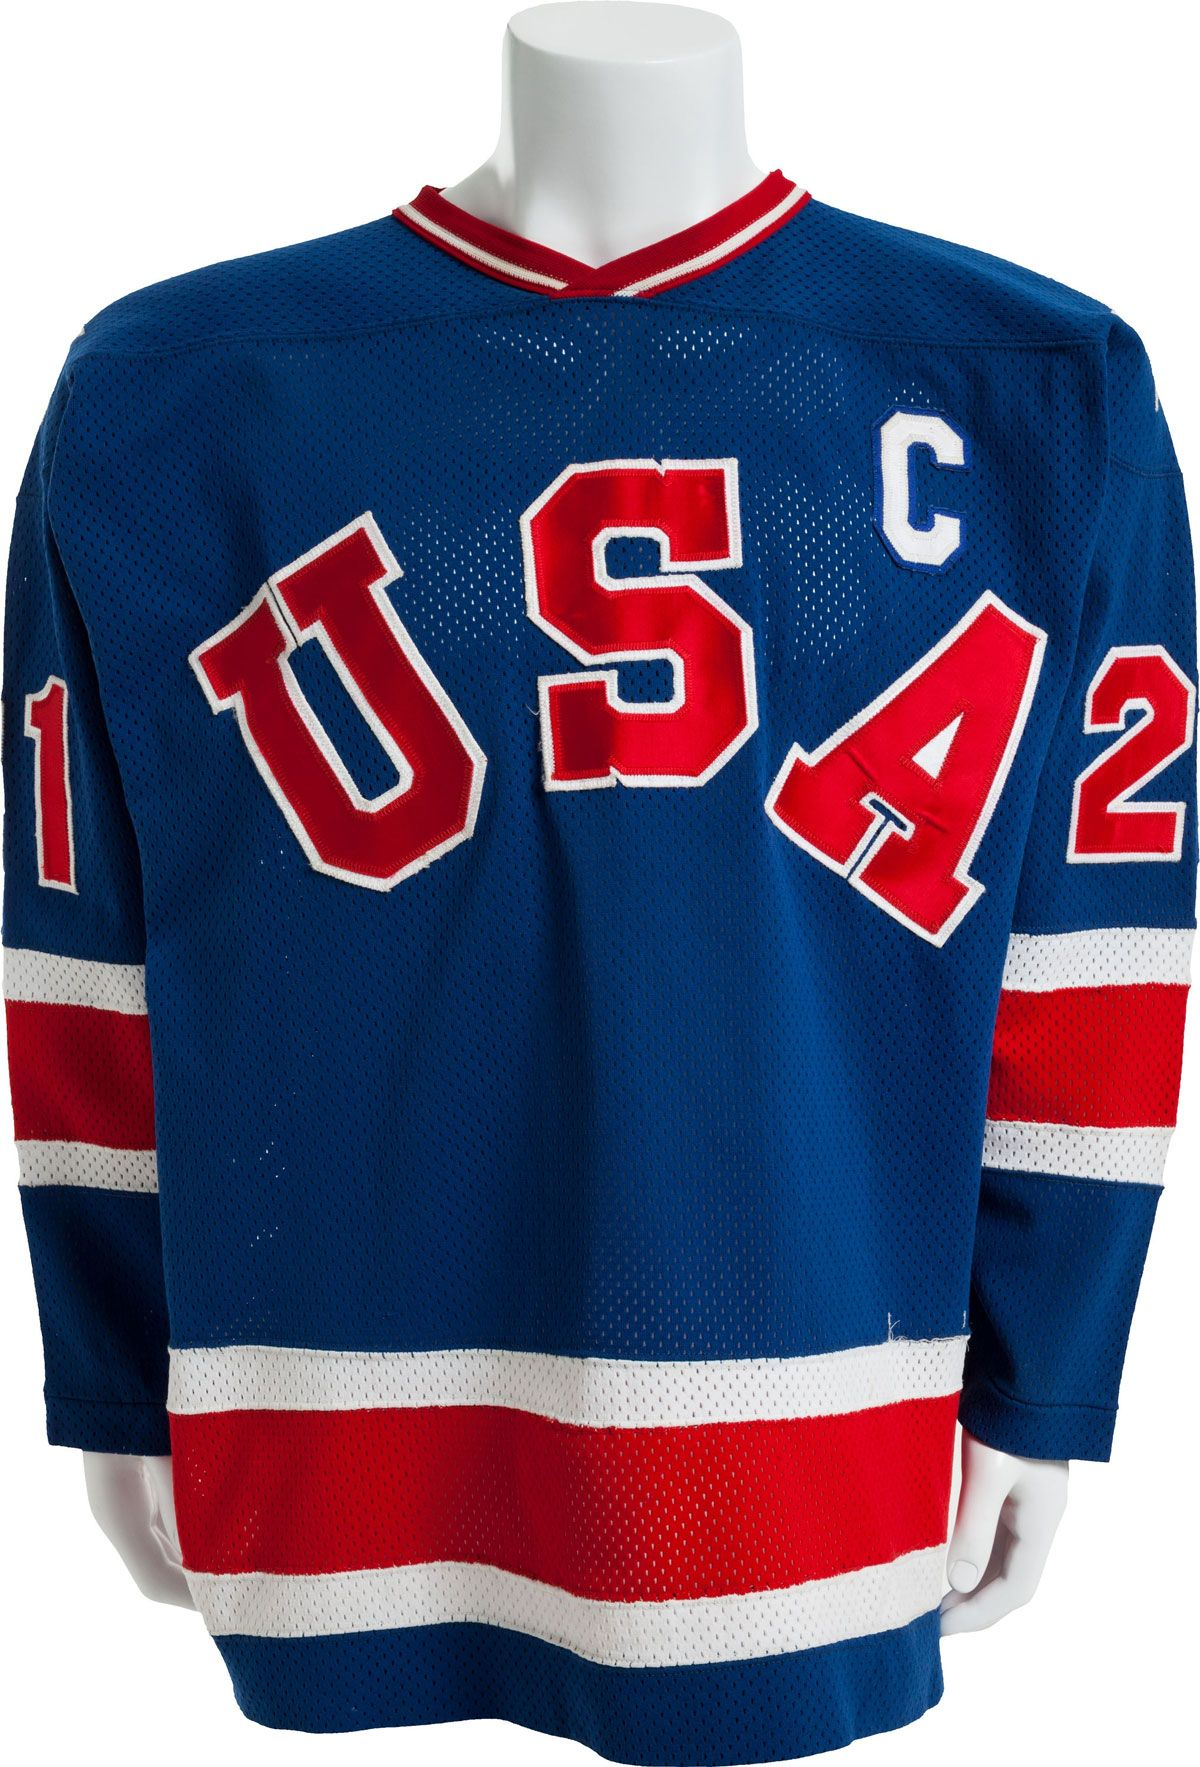 Eruzione s  Miracle on Ice  Jersey Reached  657 b592eb595